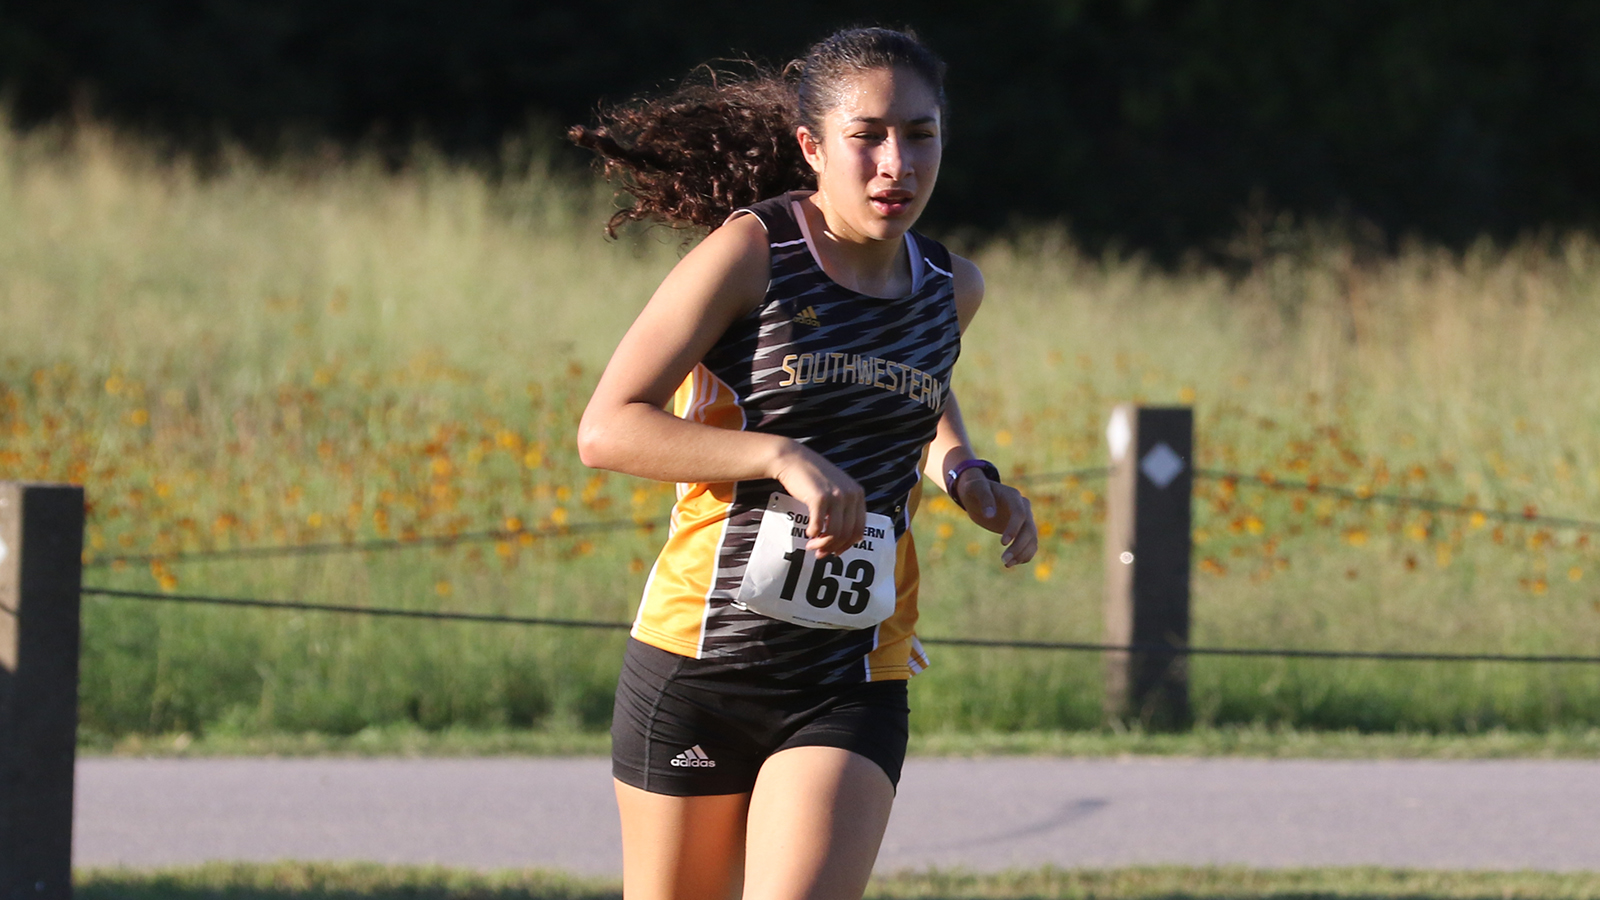 Pirate Women Place Third at Southwestern Invitational